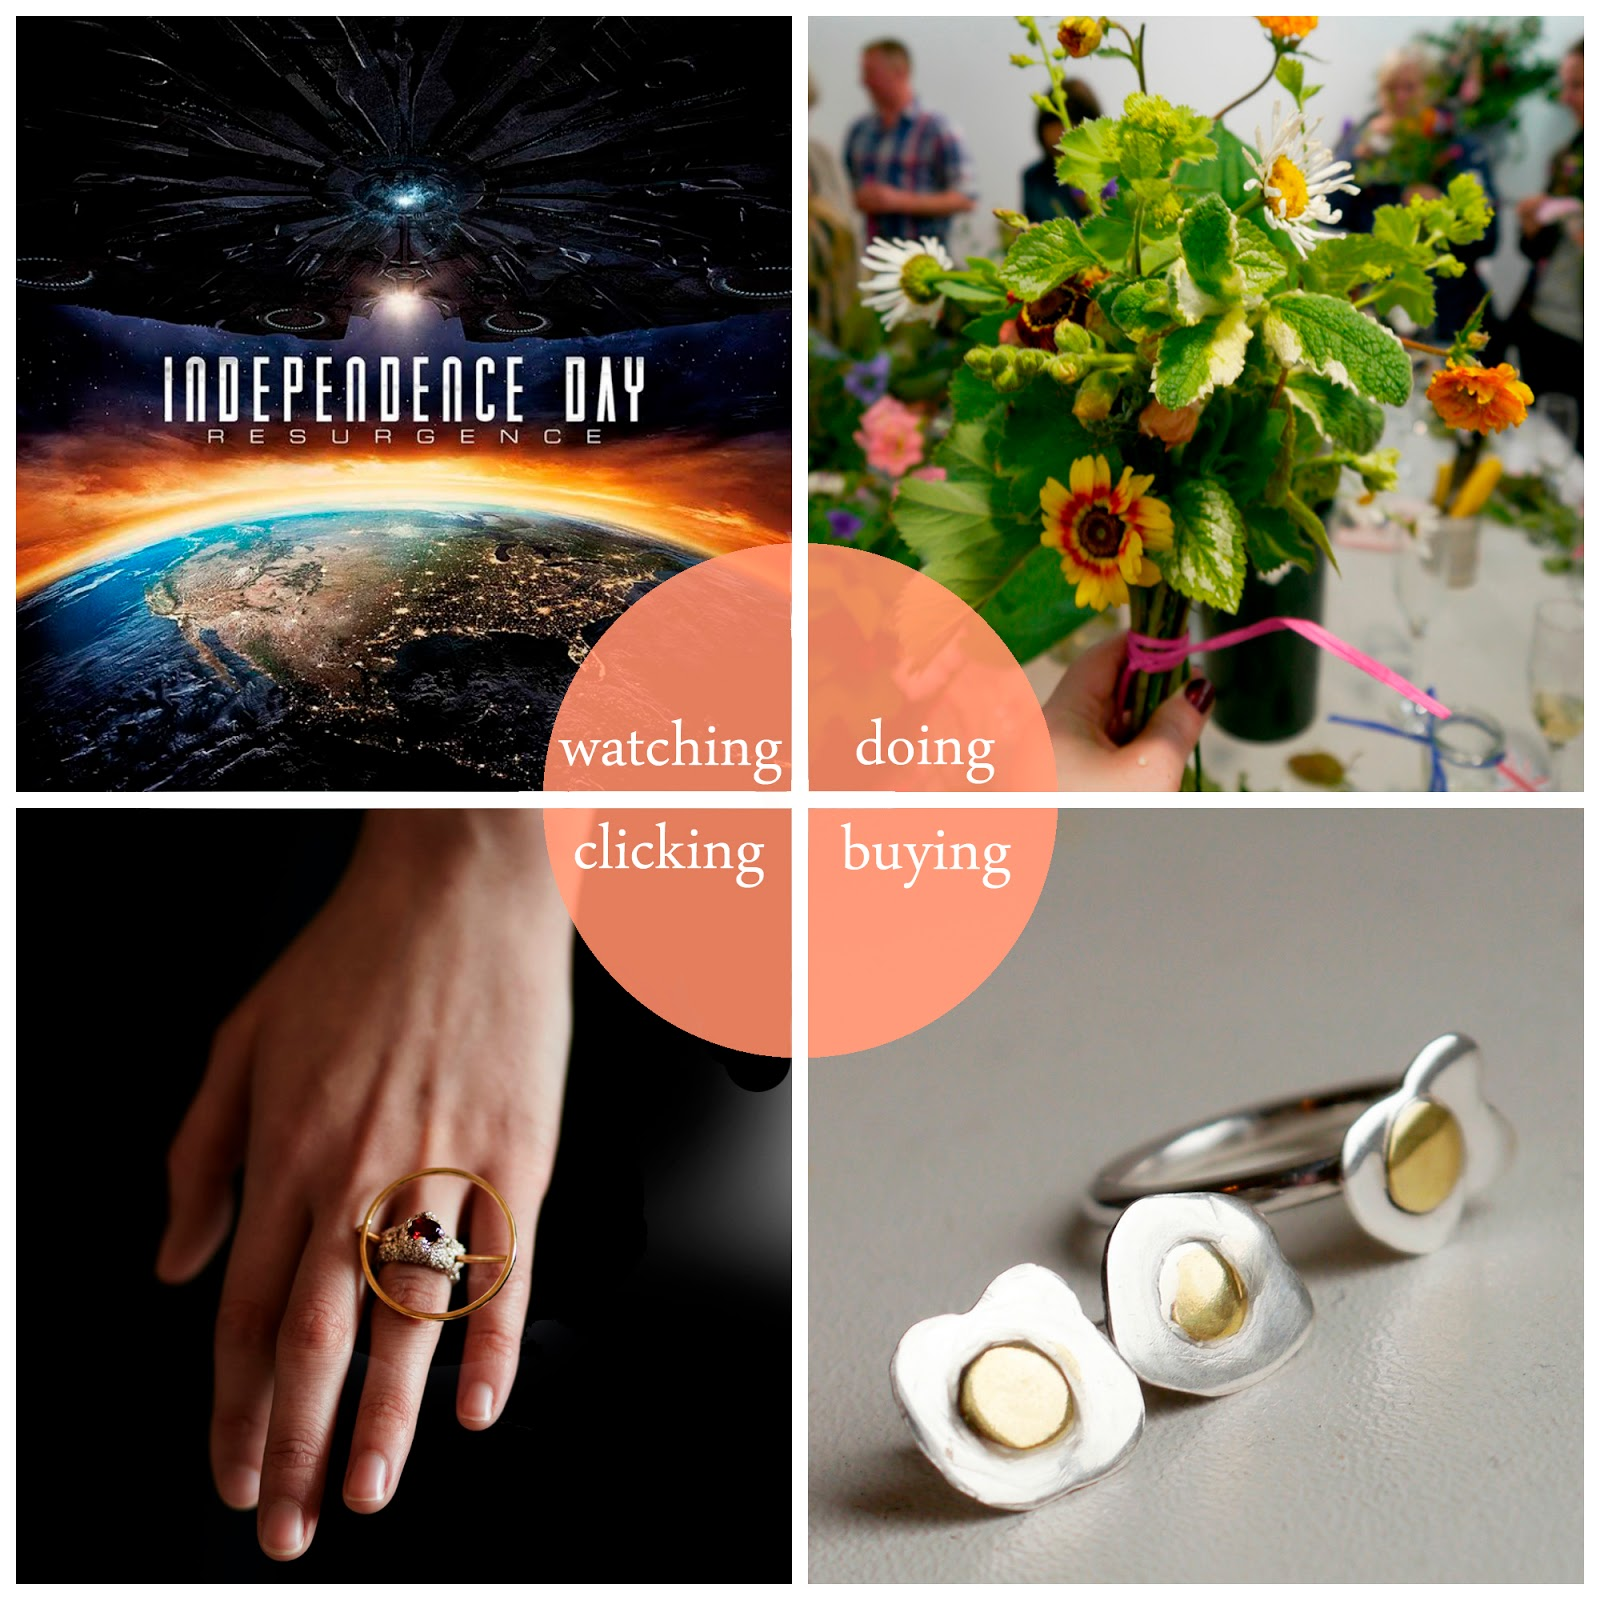 best bits, round up June 2016, 2016 best bits, Independence Day: Resurgence, M Boutique, M Boutique Dundee, Blooming Bees, jewellery making, Vanilla Ink